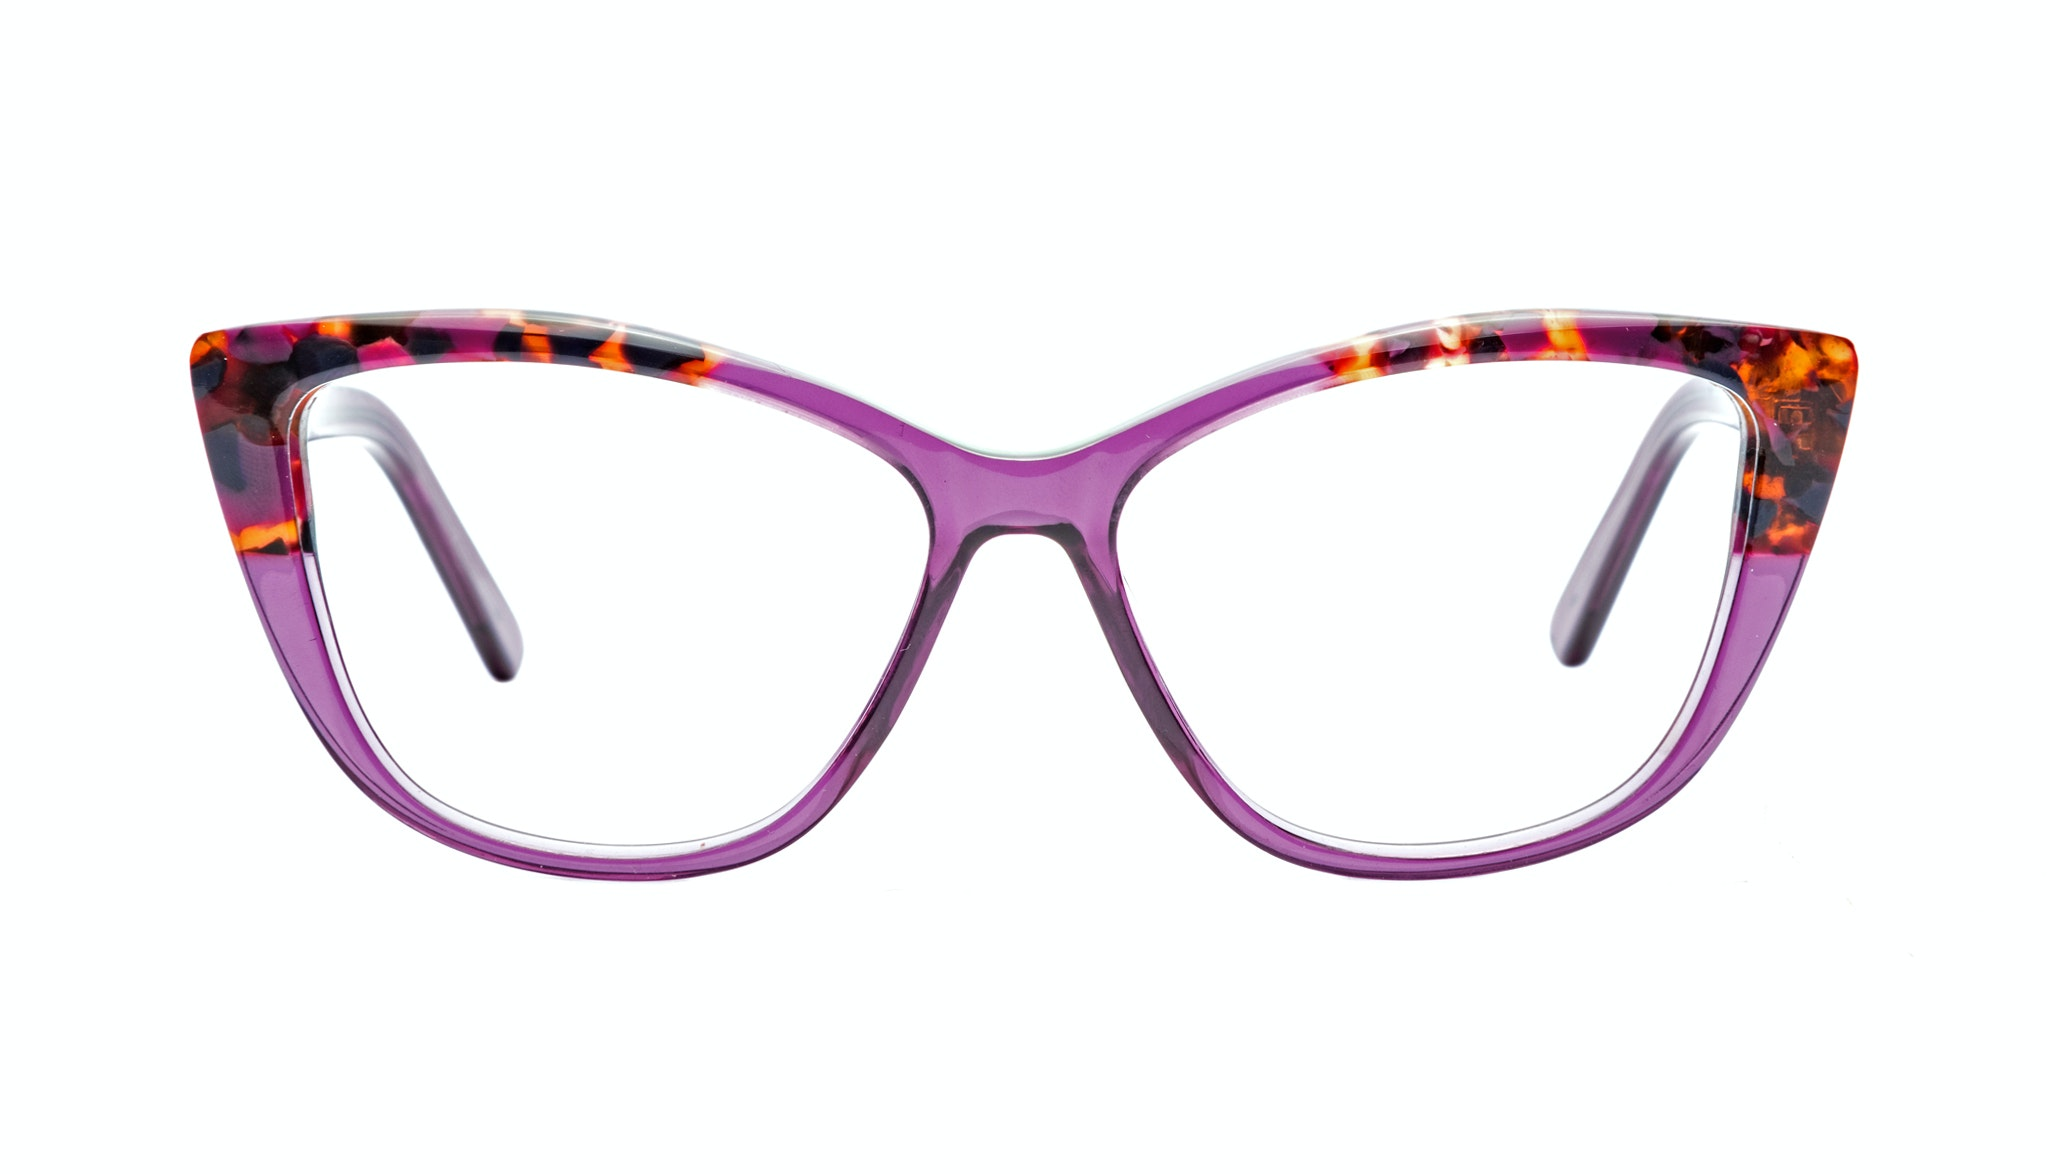 Affordable Fashion Glasses Cat Eye Eyeglasses Women Dolled Up Pretty Purple